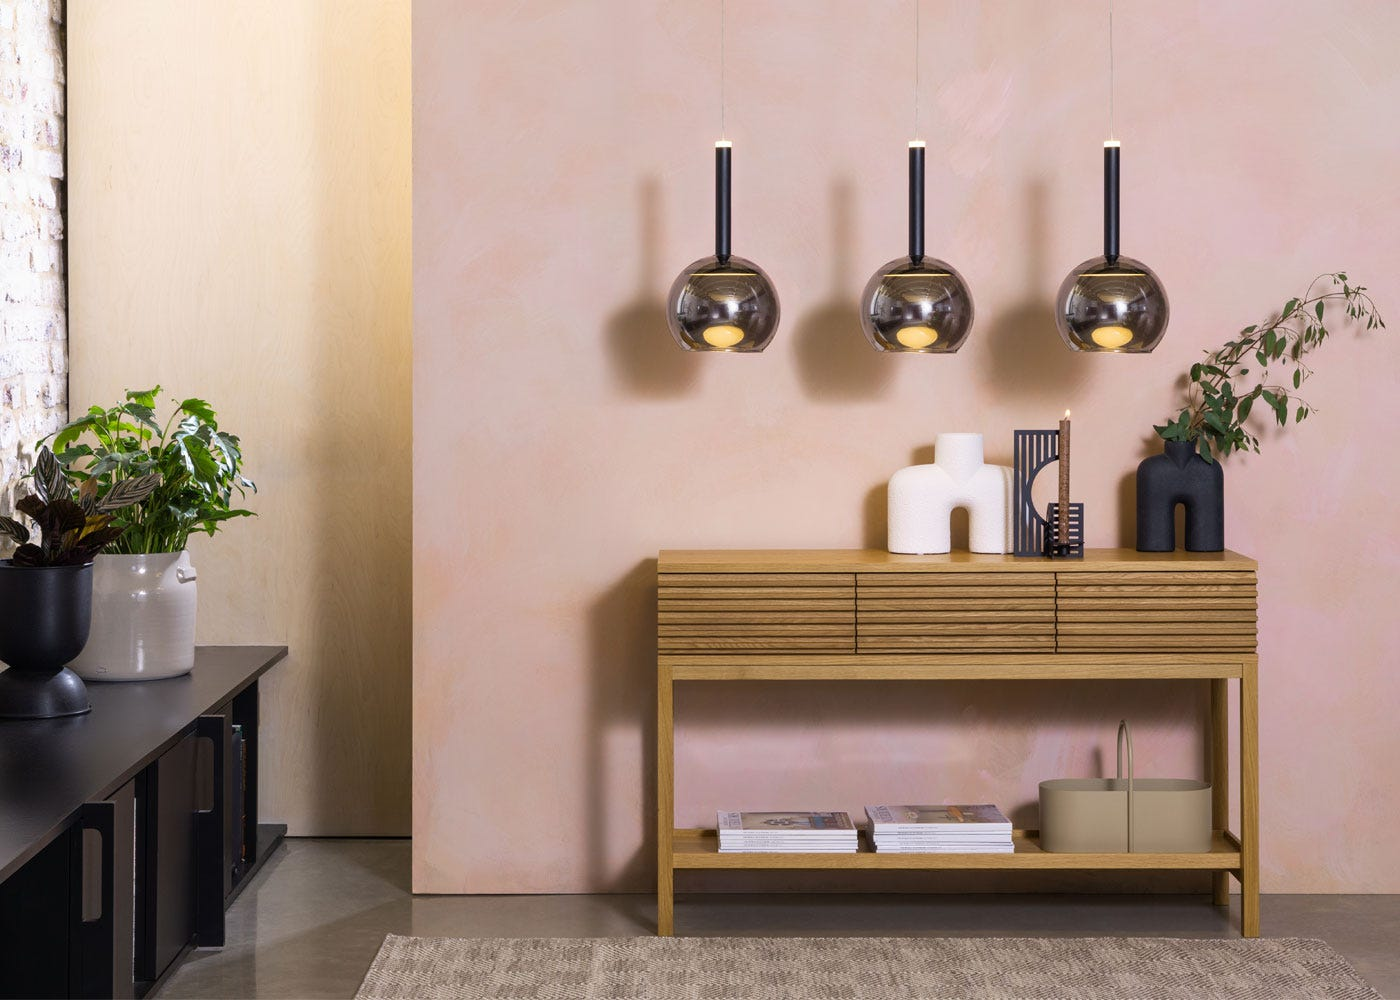 Disc LED Pendant light Black with smocked glass globe (sold separately), Verona console table.